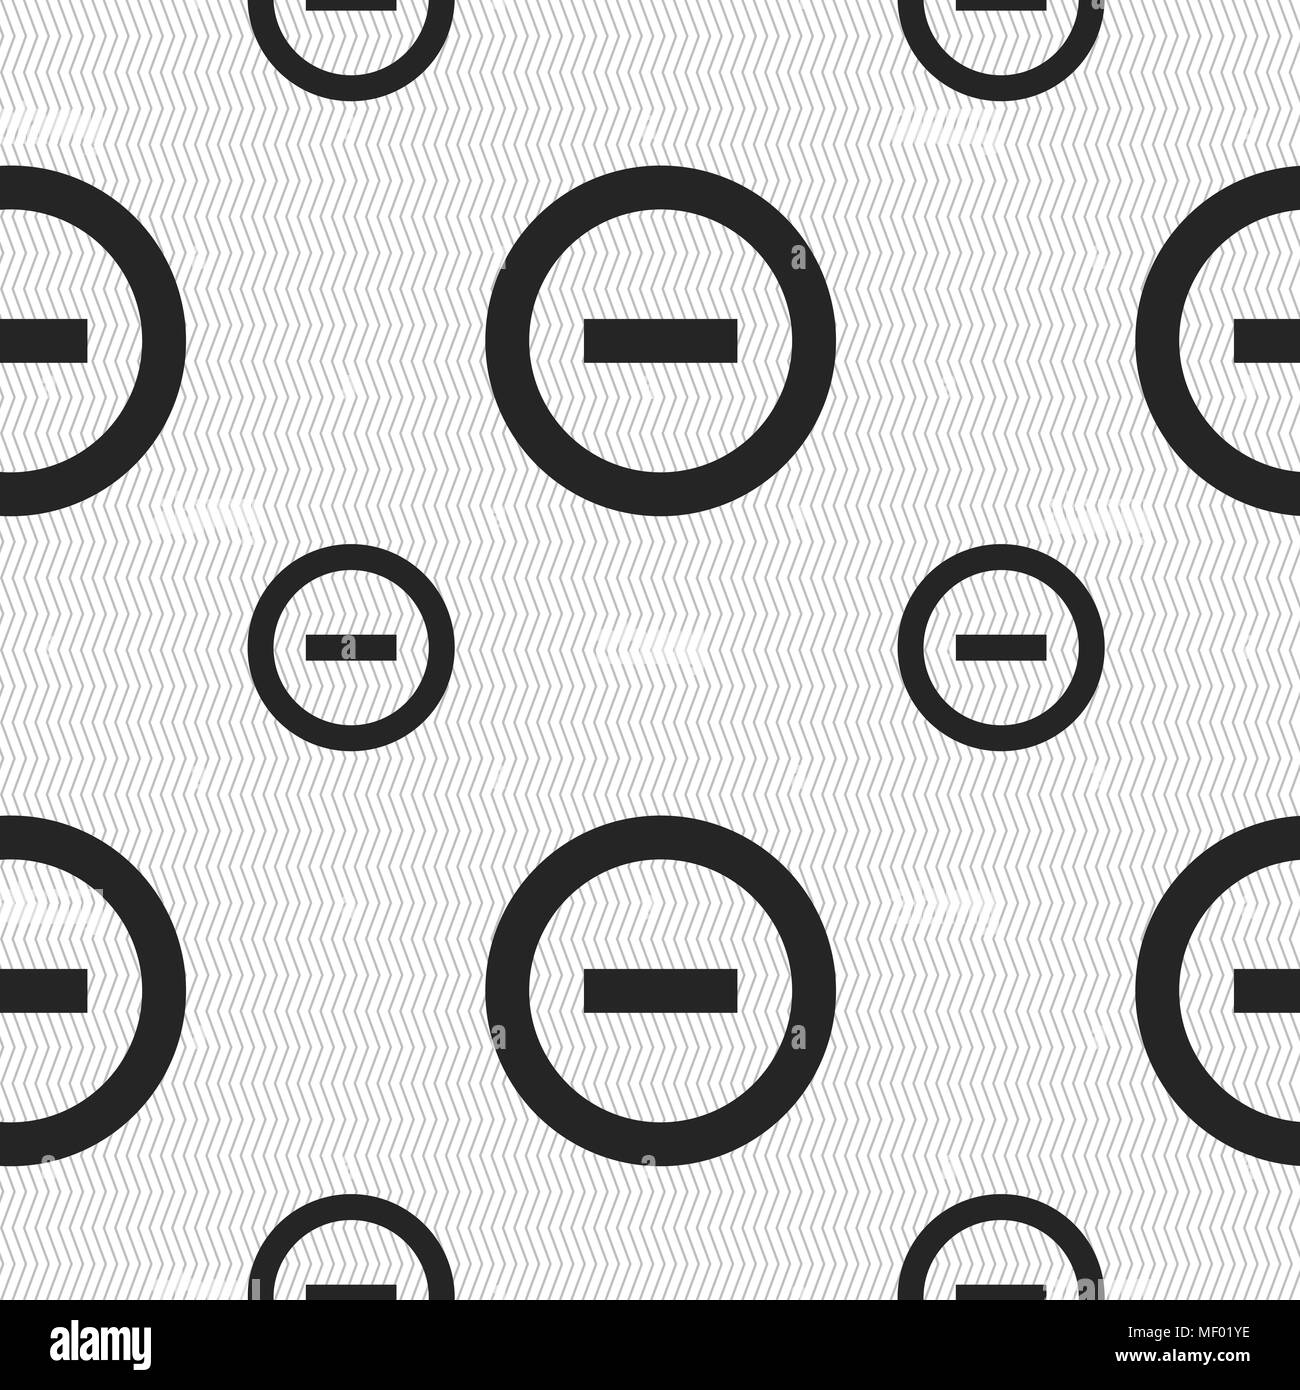 Minus, Negative, zoom, stop icon sign. Seamless pattern with geometric texture. Vector illustration - Stock Image